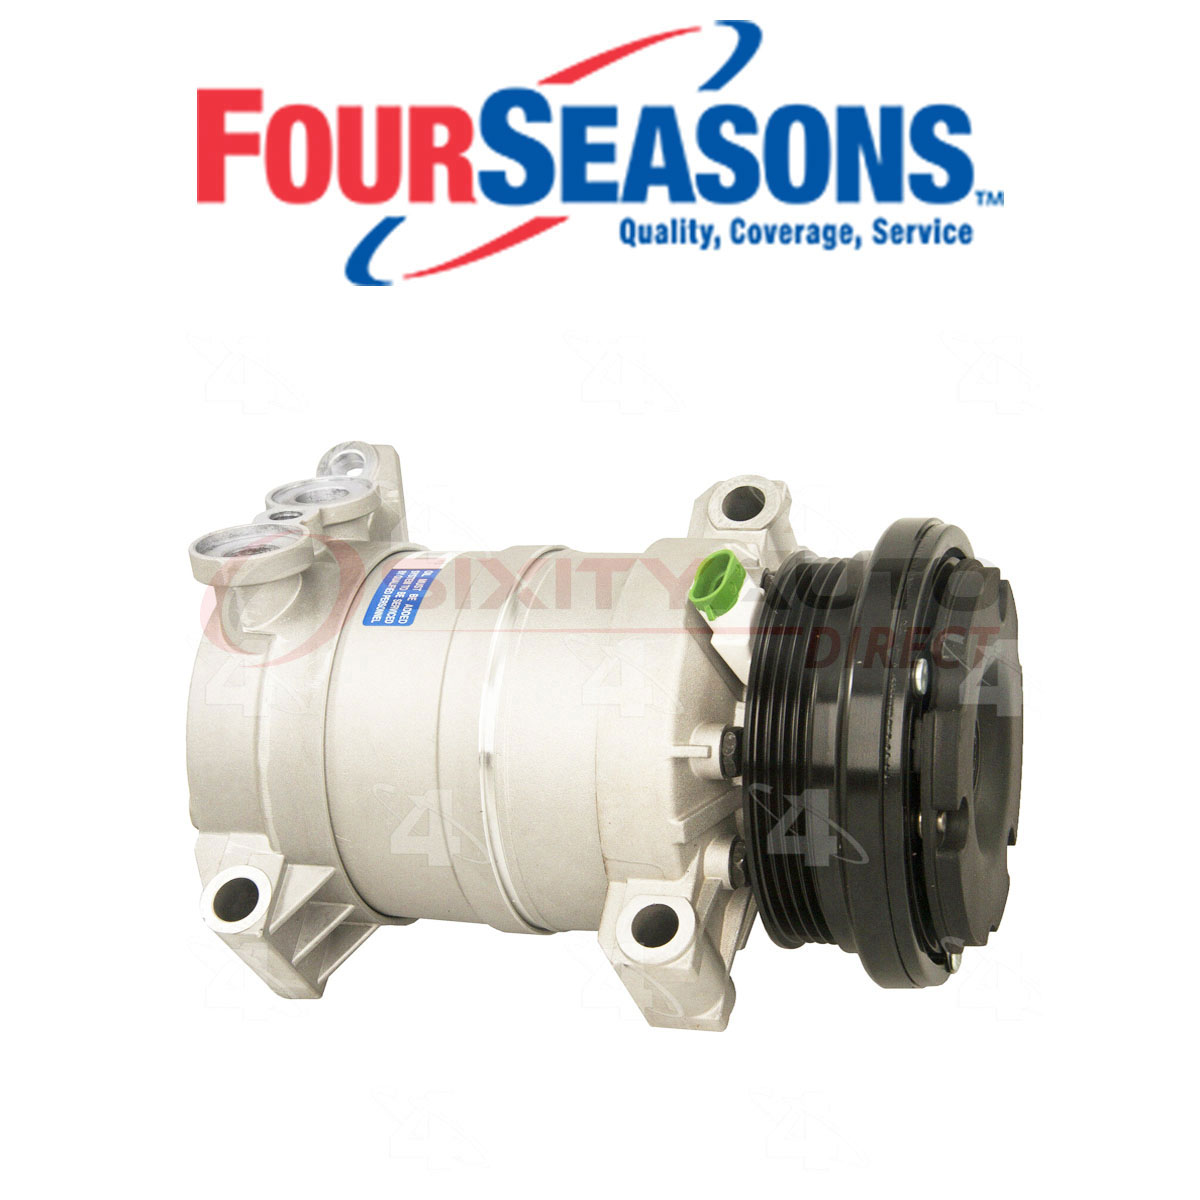 New Four Seasons or Equivalent A/C Aftermarket Compressor and ...